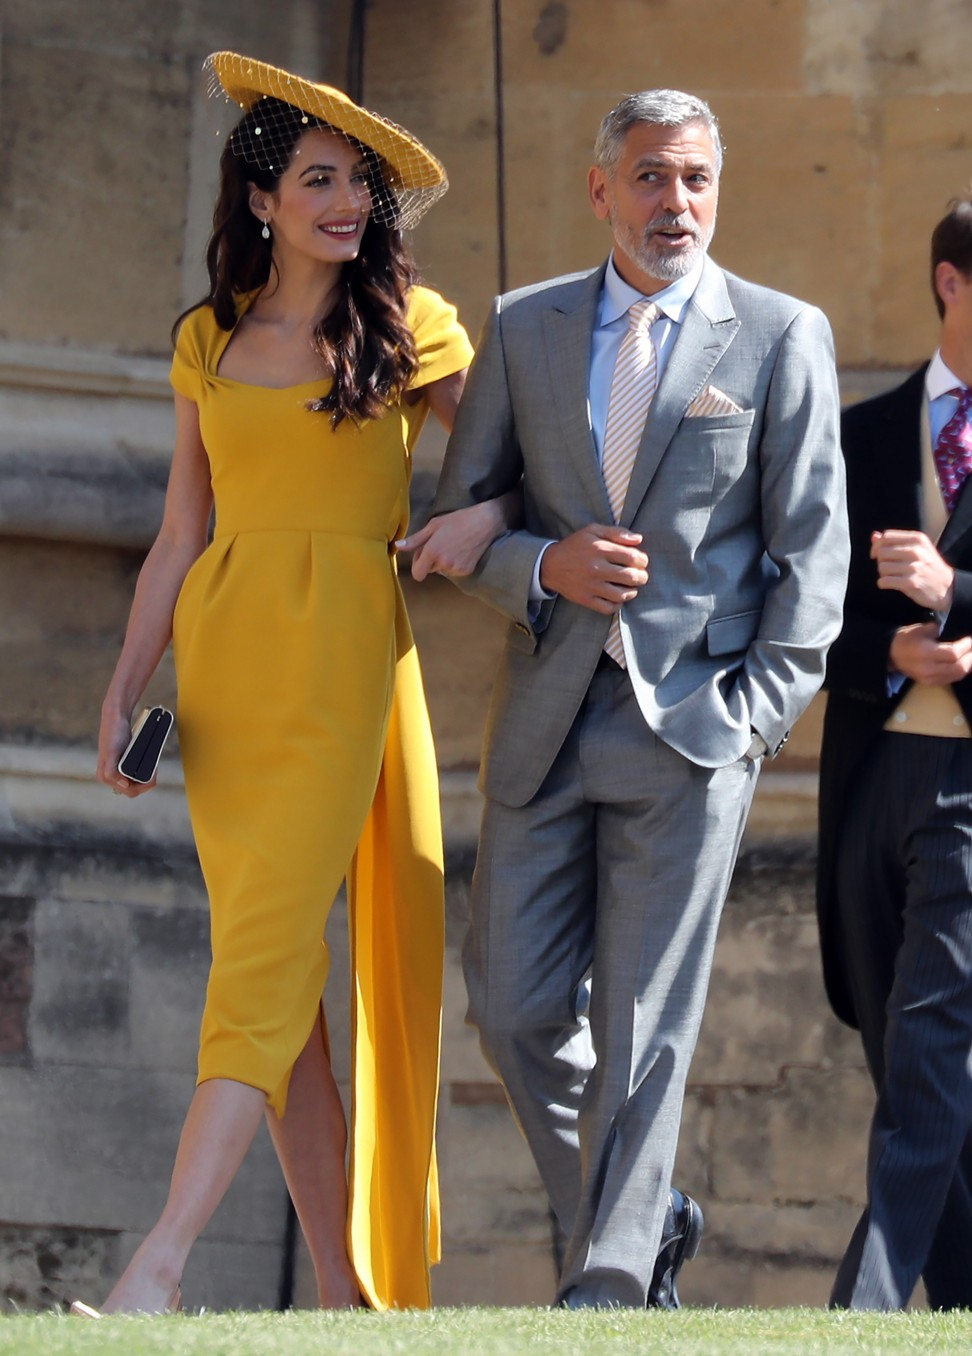 George and Amal Clooney's US$13 million wedding and 7 other outrageously expensive celebrity nuptials